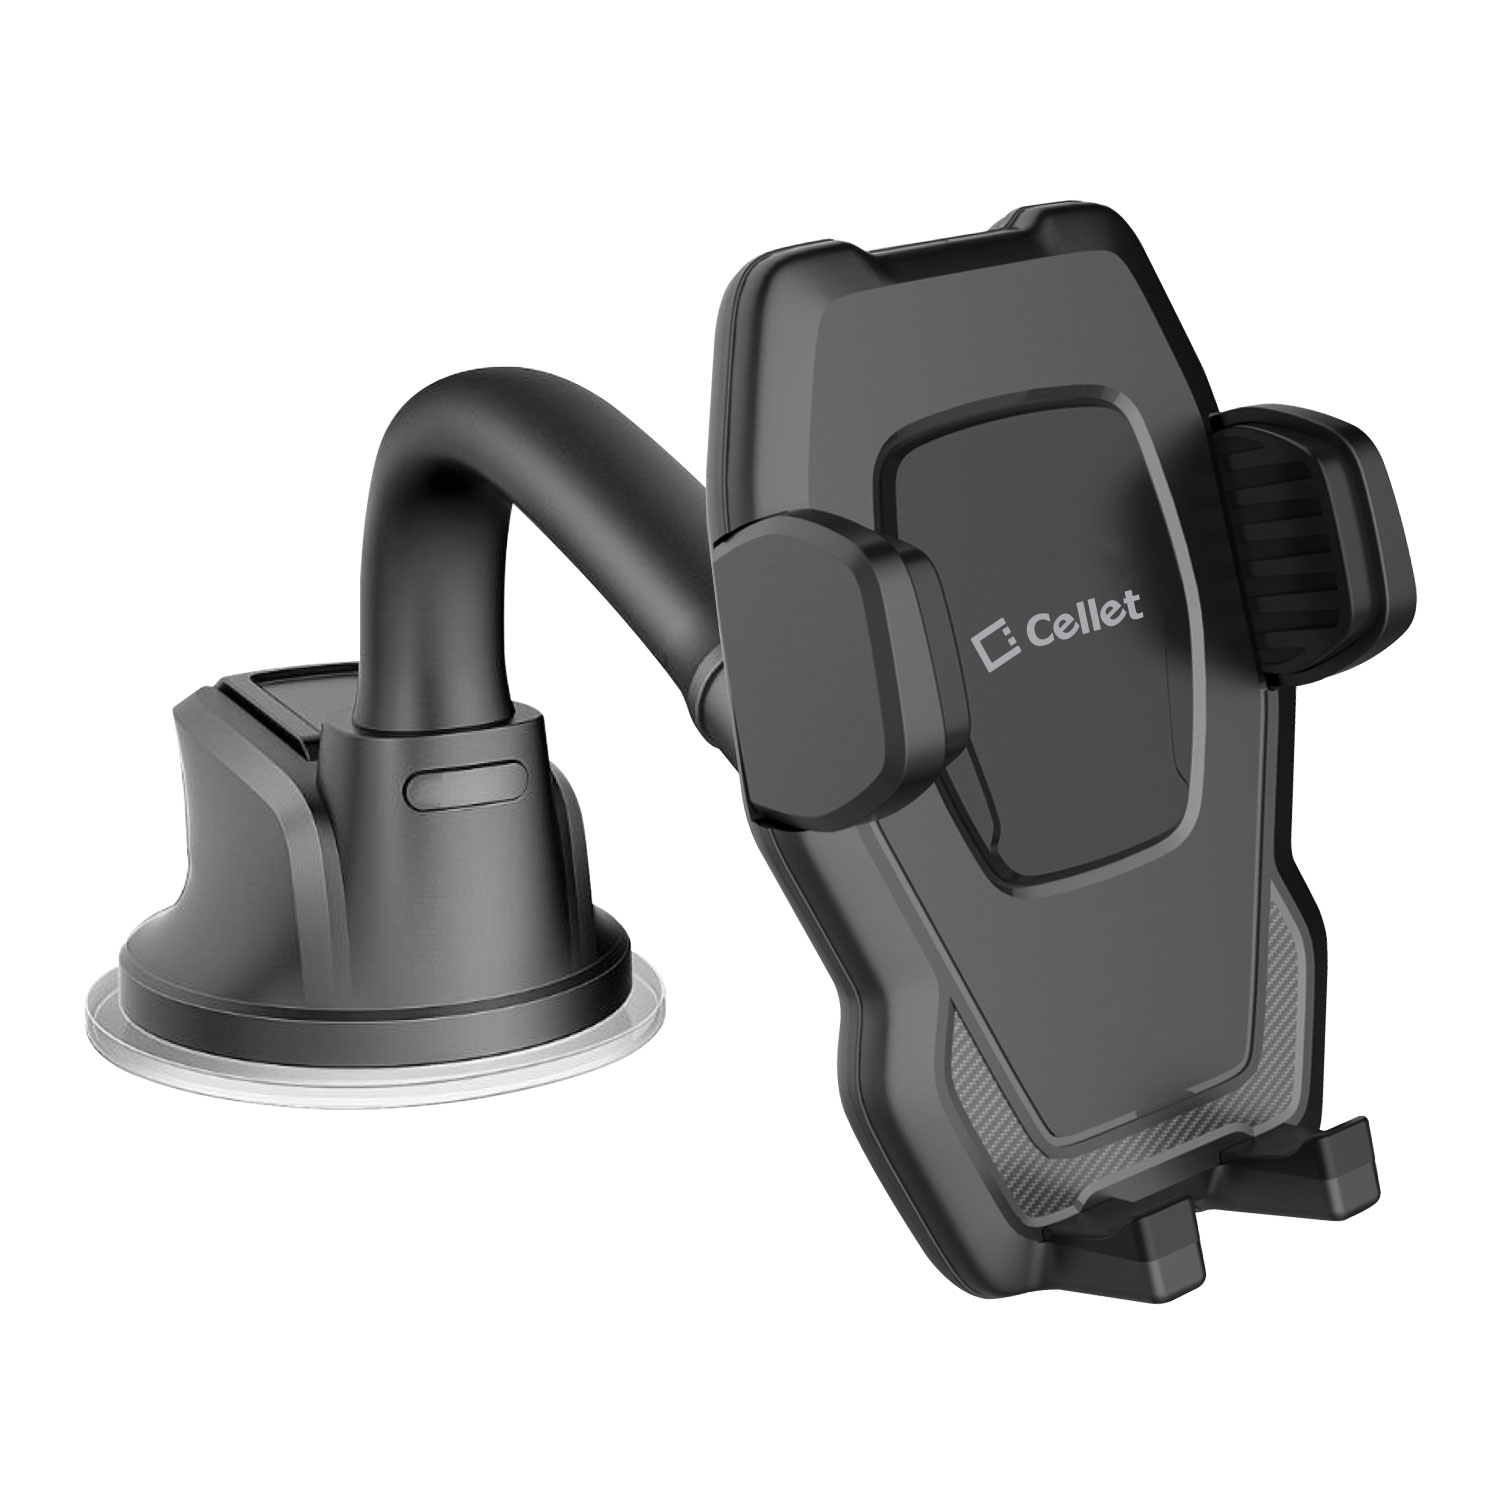 Alcatel A5 Windshield Phone Holder Goose Neck Black